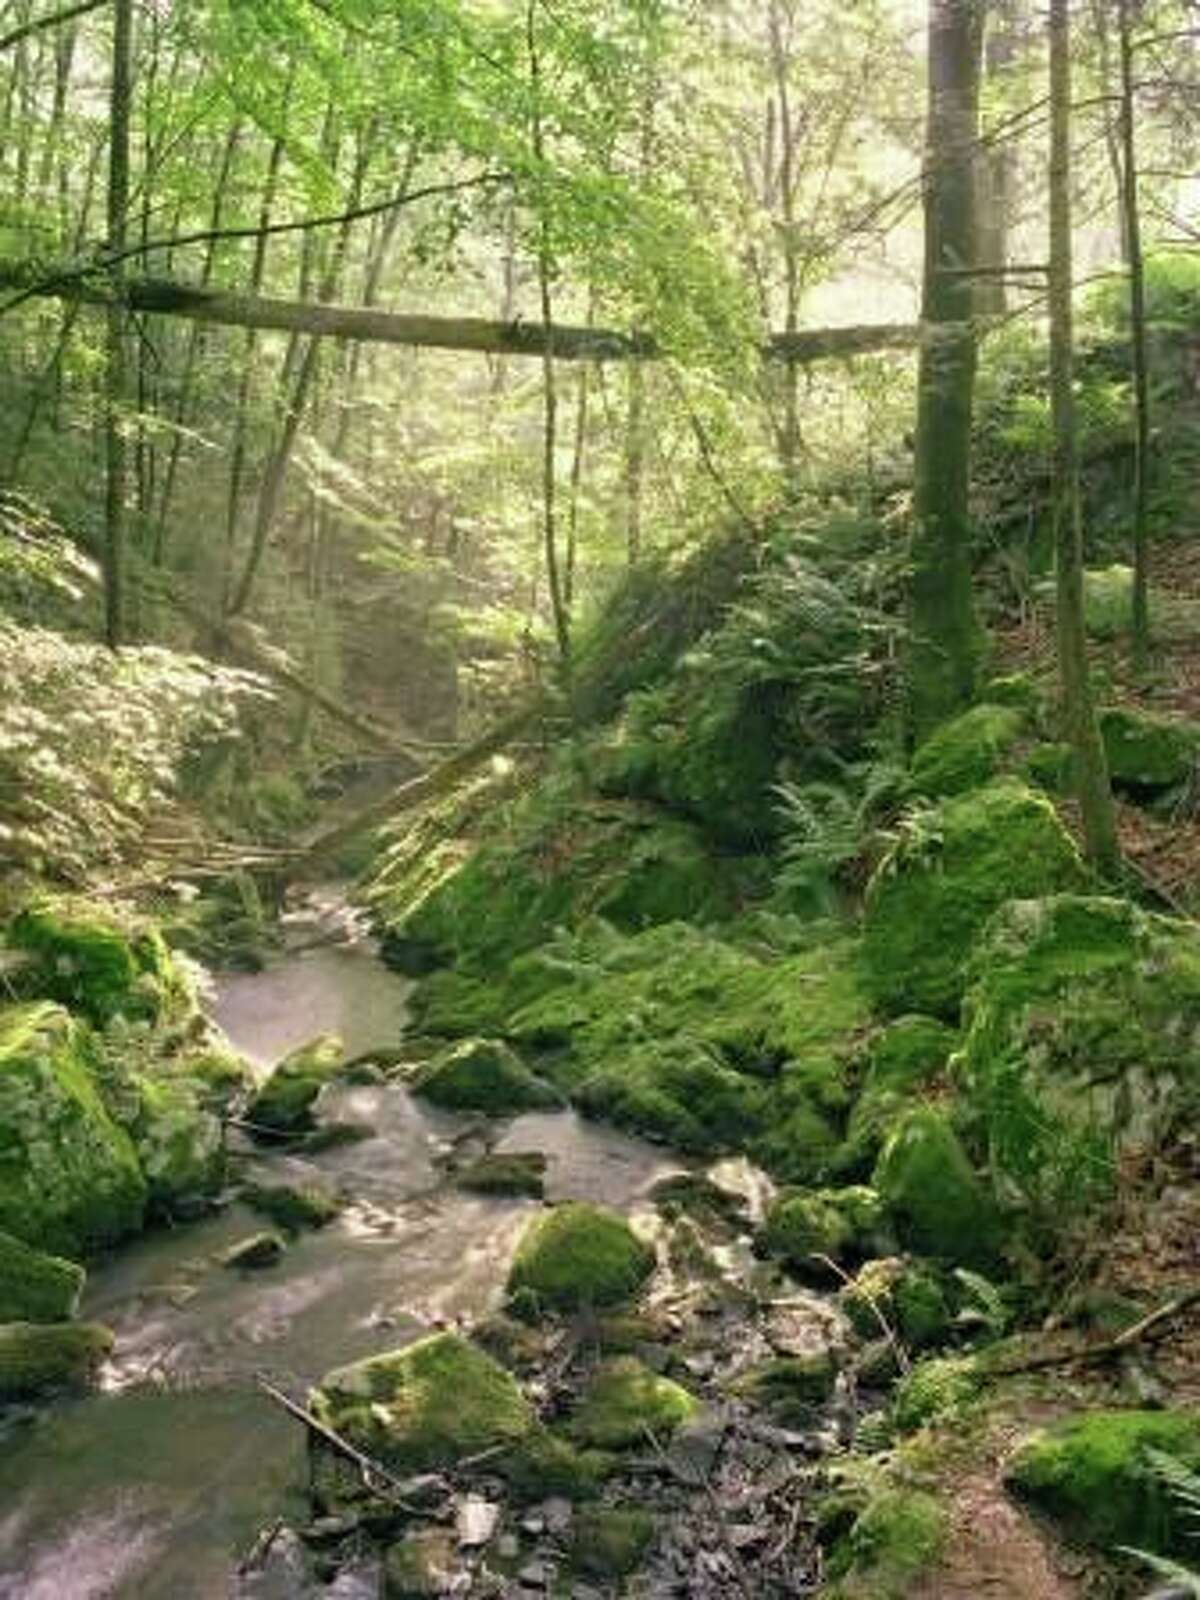 """The Bruce Museum's """"Mianus River Gorge: Photographs by William Abranowicz"""" exhibit features selected photos from Abranowicz that have captured the profound beauty and myriad faces of this primeval forest in our midst. It runs now through June 5. Find out more."""